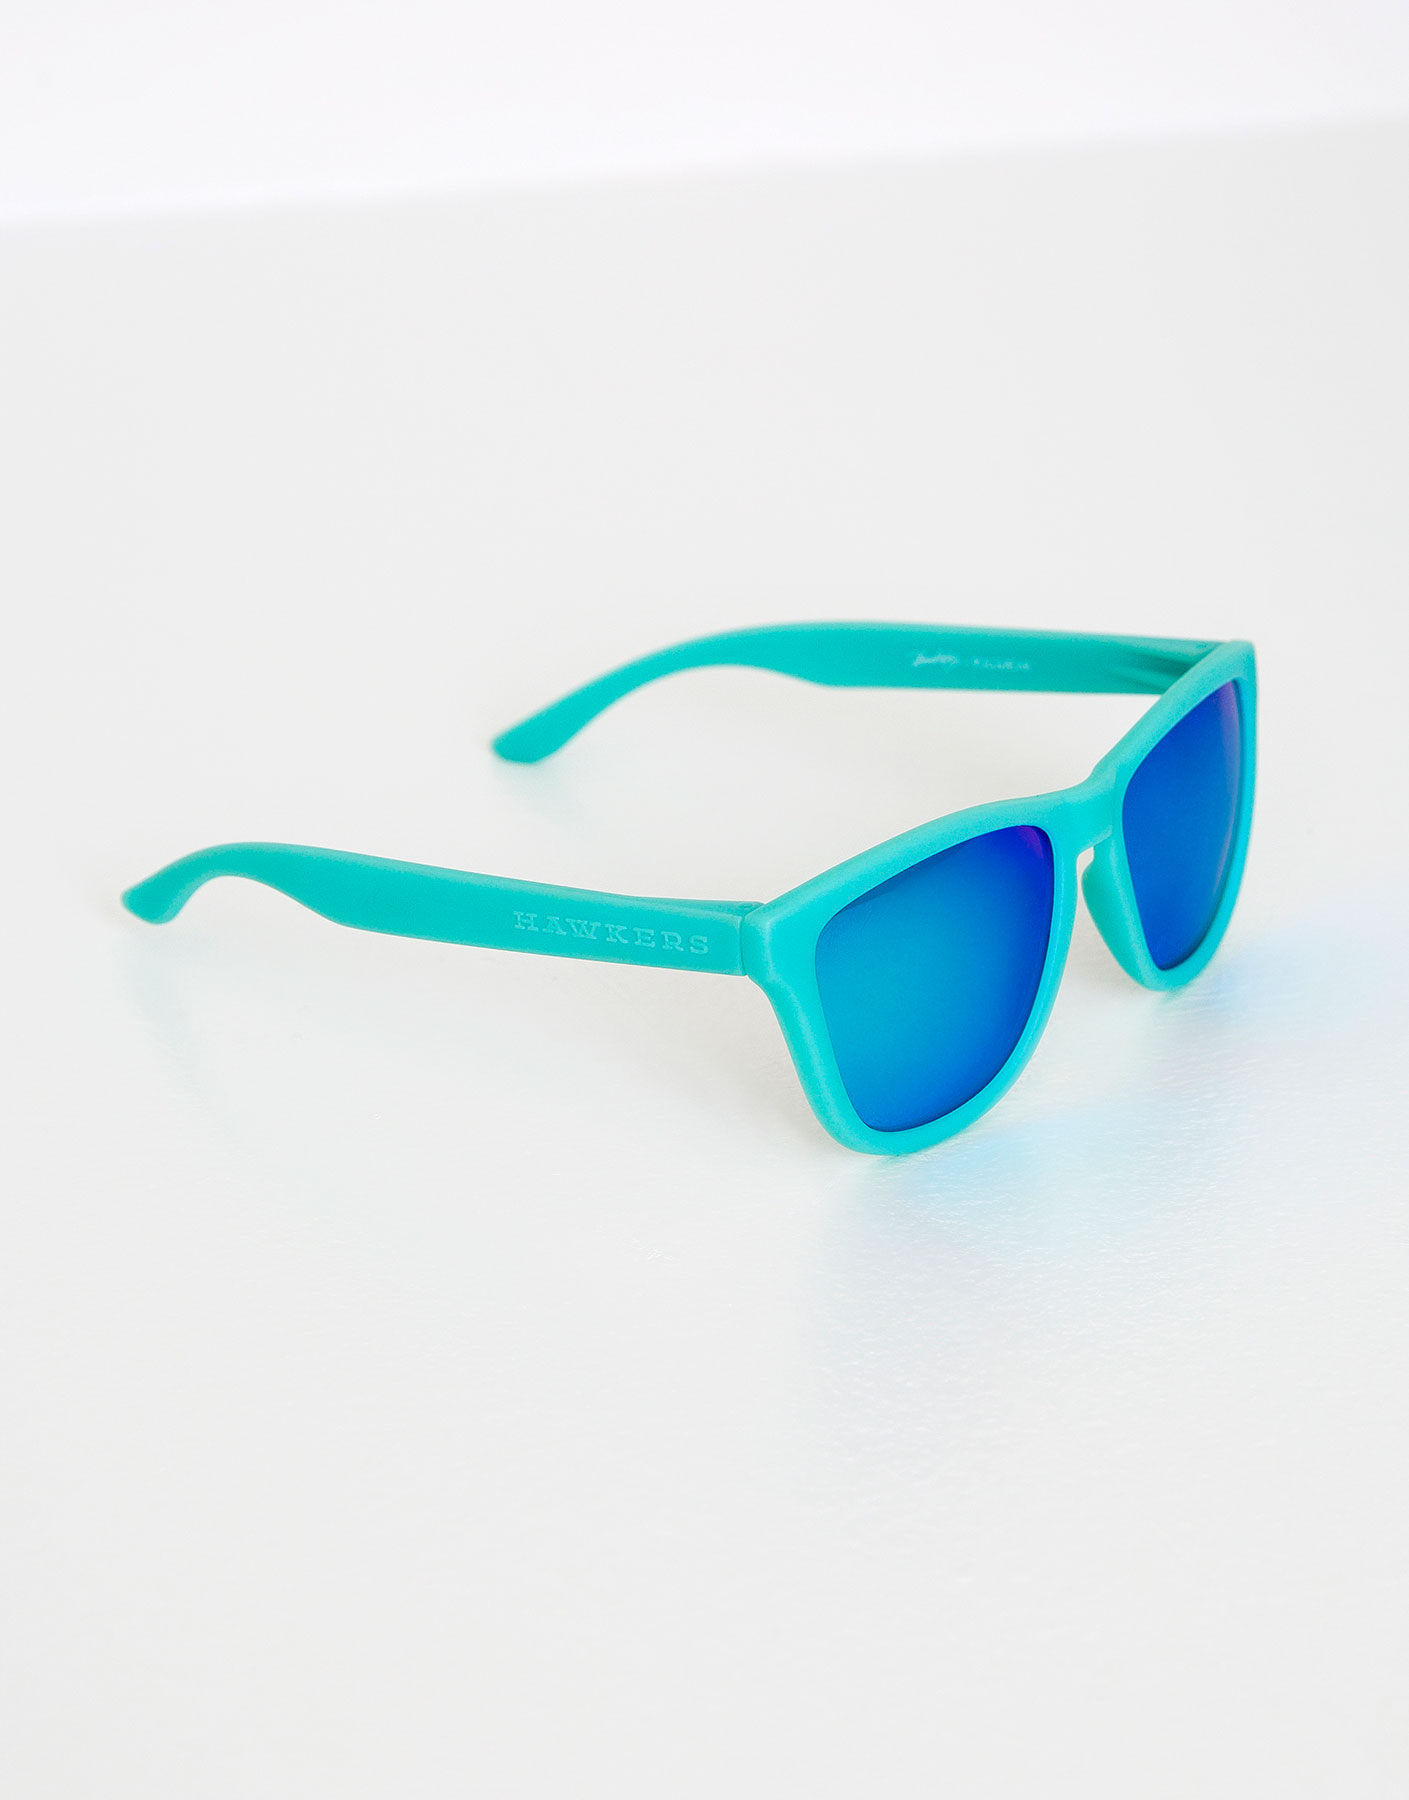 Gafas de sol hawkers turquoise clear blue one